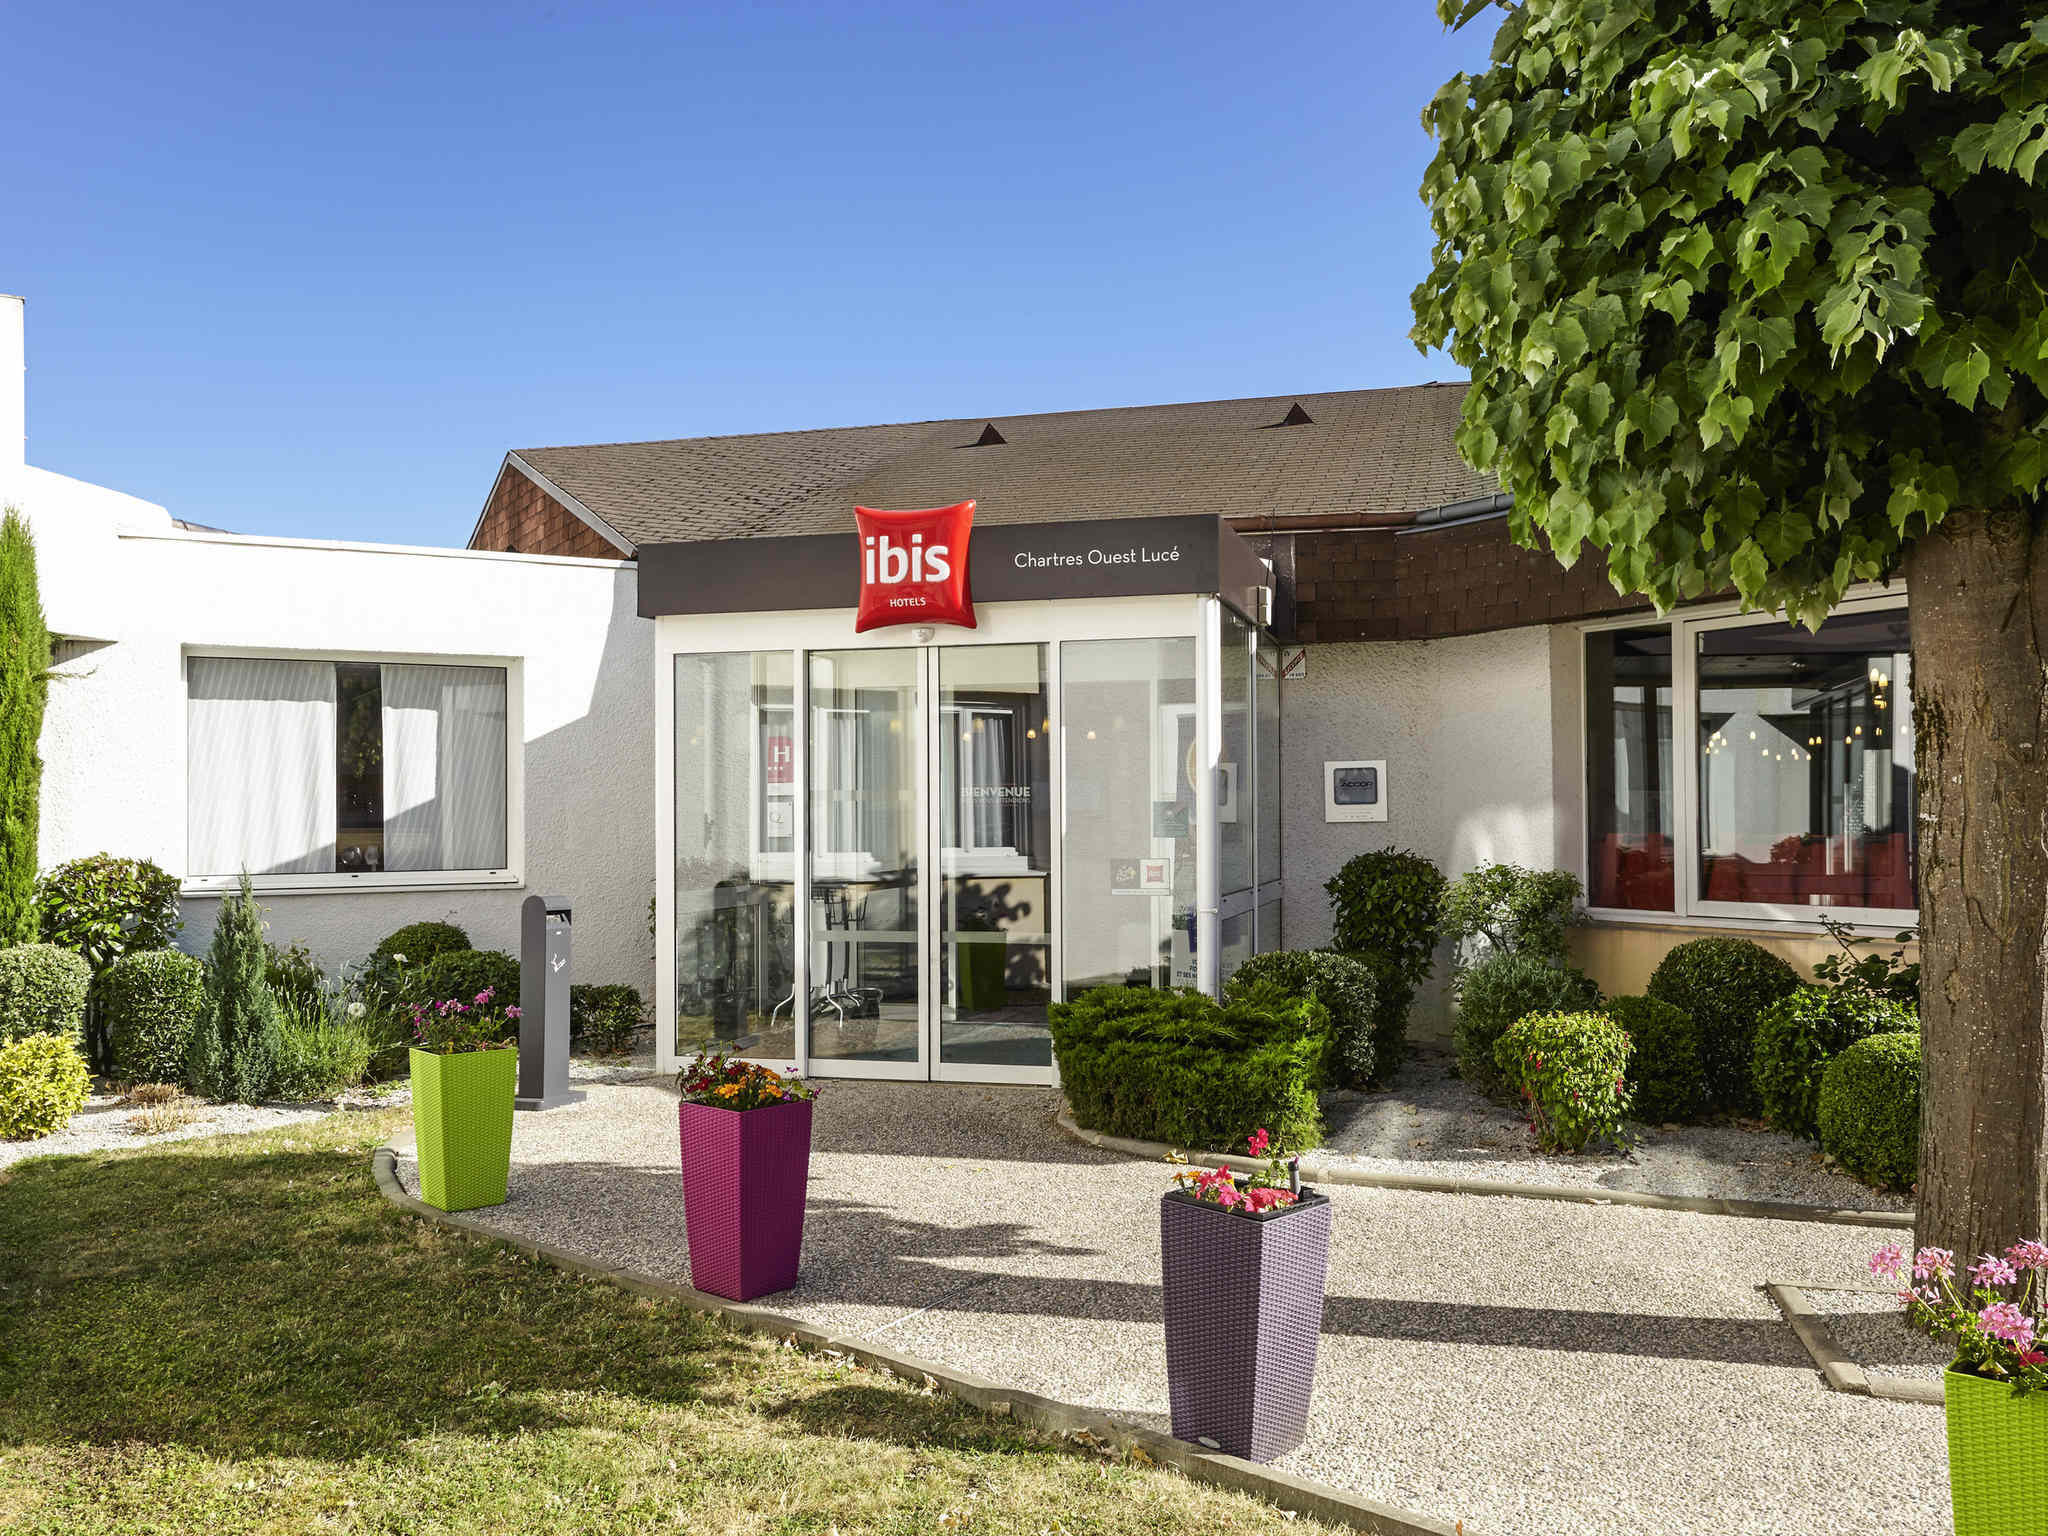 Hotel - ibis Chartres West Lucé